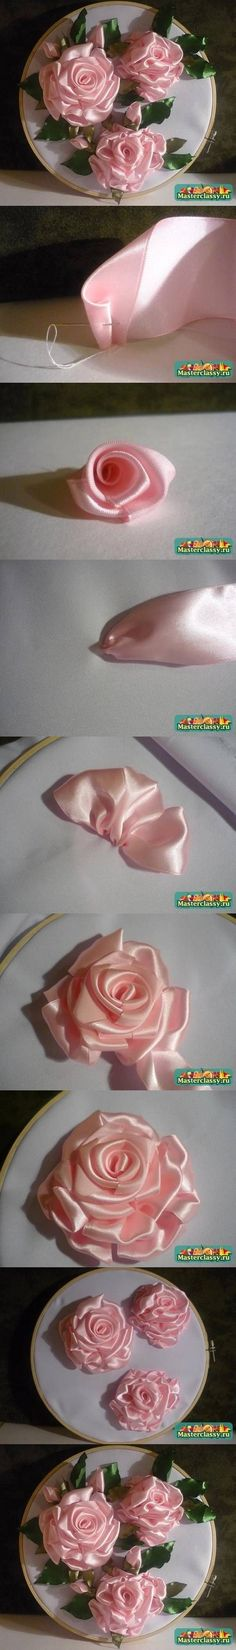 DIY Embroidery Ribbons Rose